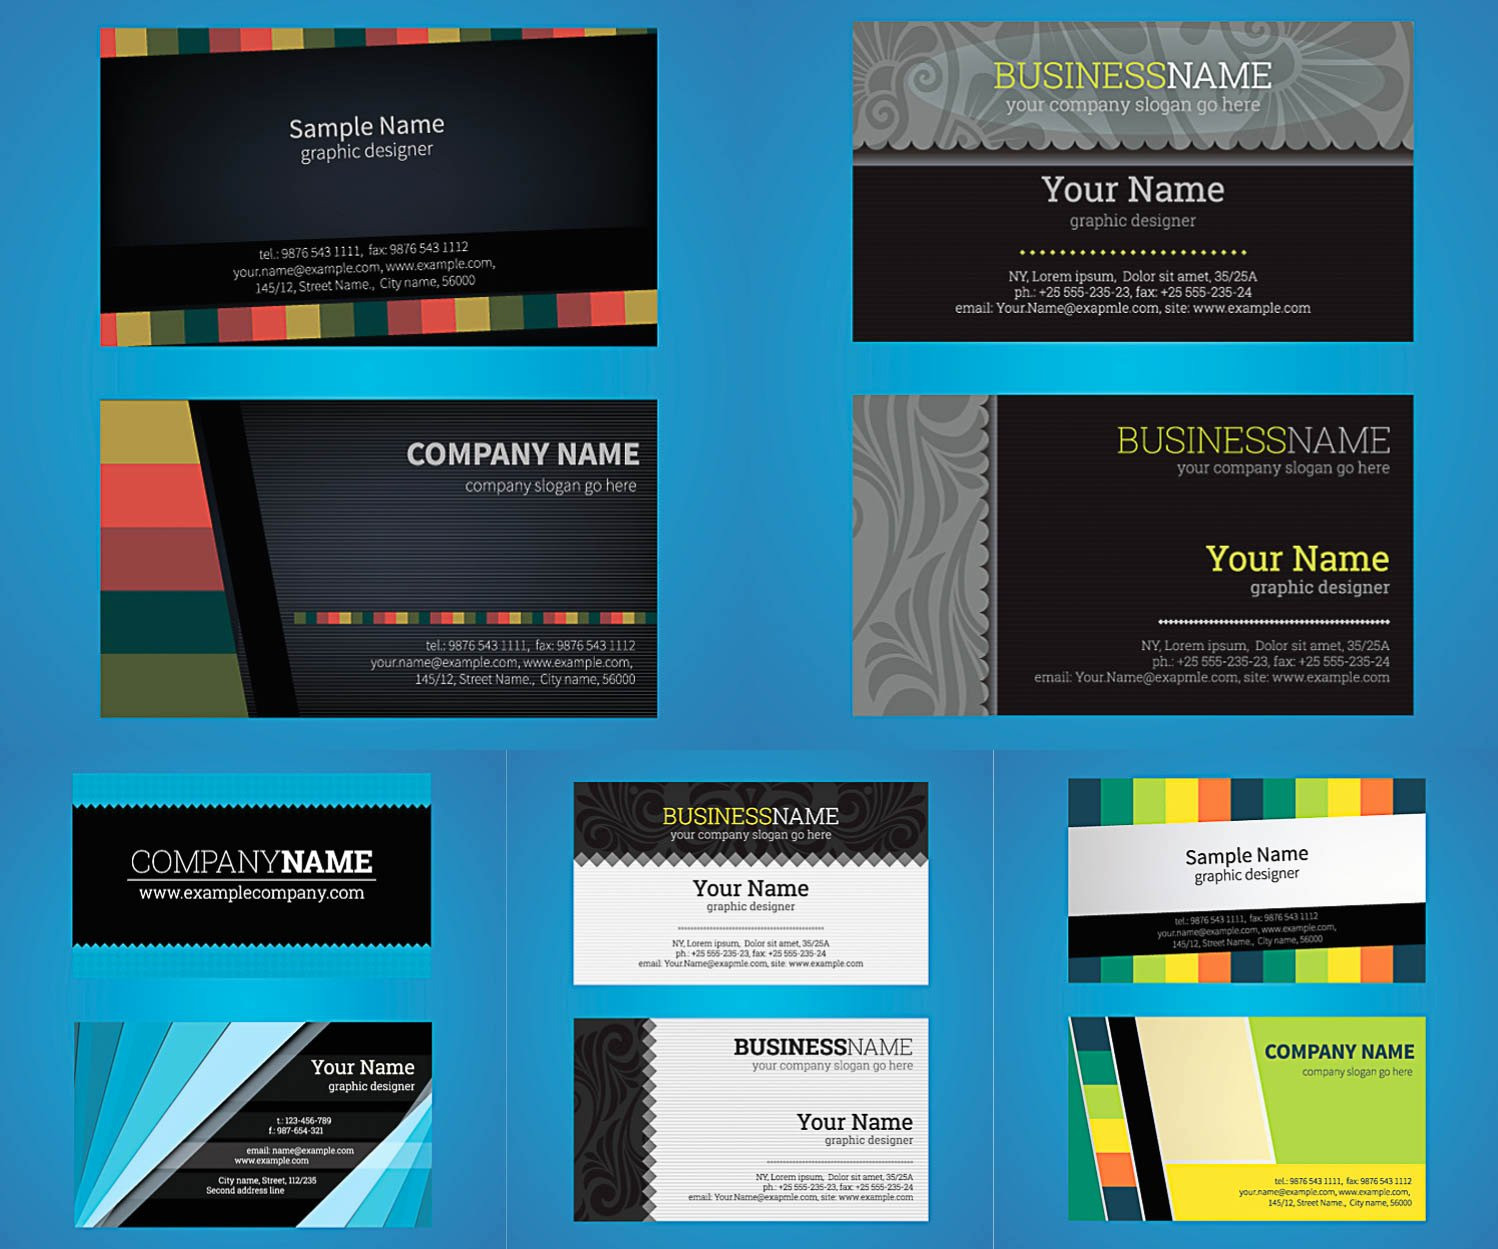 Business Card Template Ai Inspirational Business Vector Graphics Art Free Design Ai